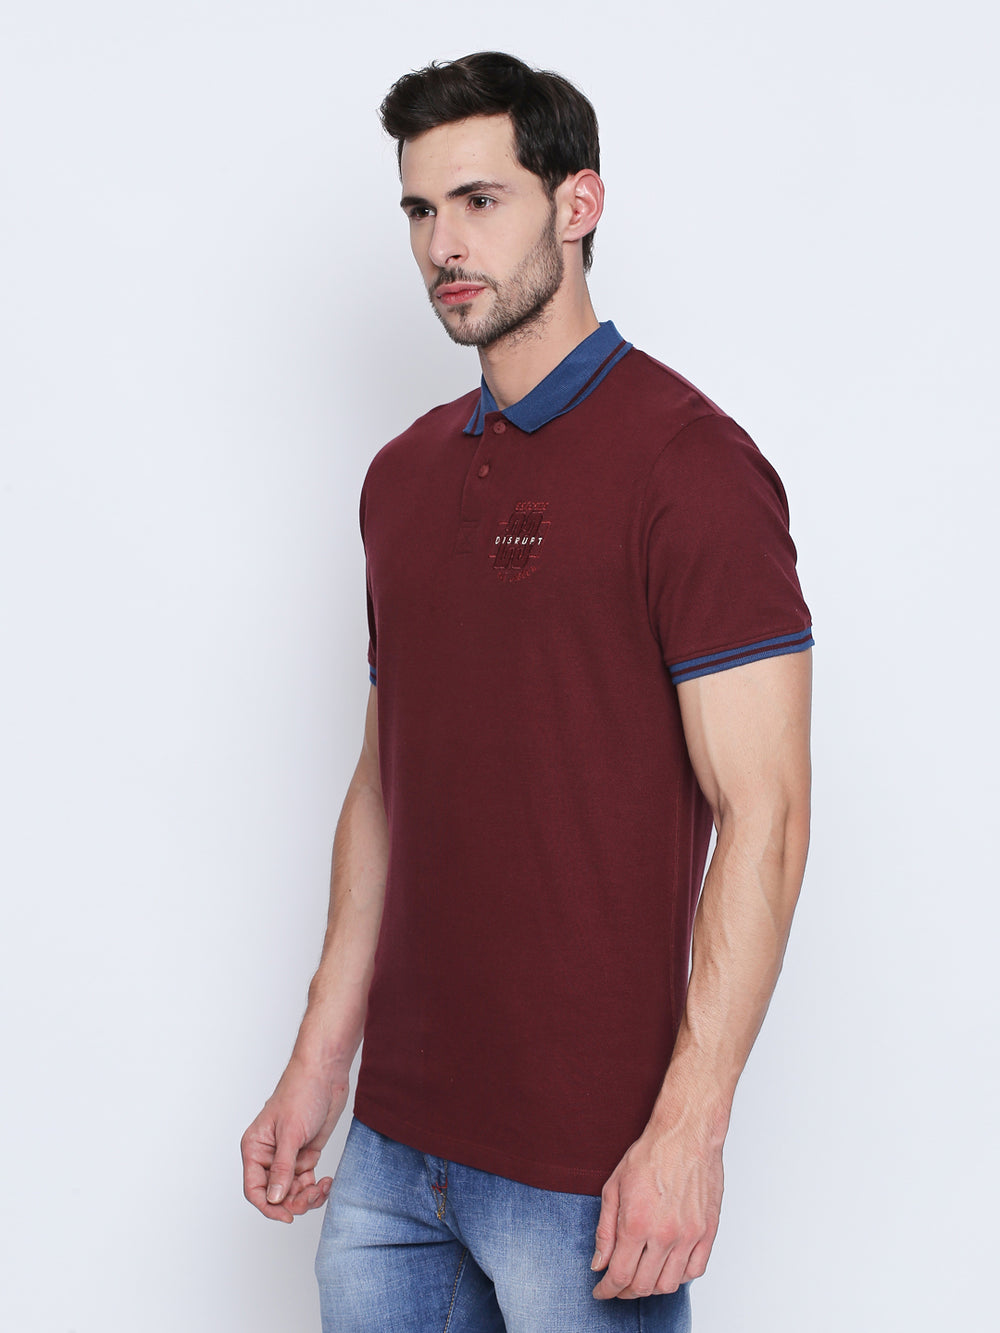 Disrupt Wine Embroidered Cotton Half Sleeve Polo T-Shirt